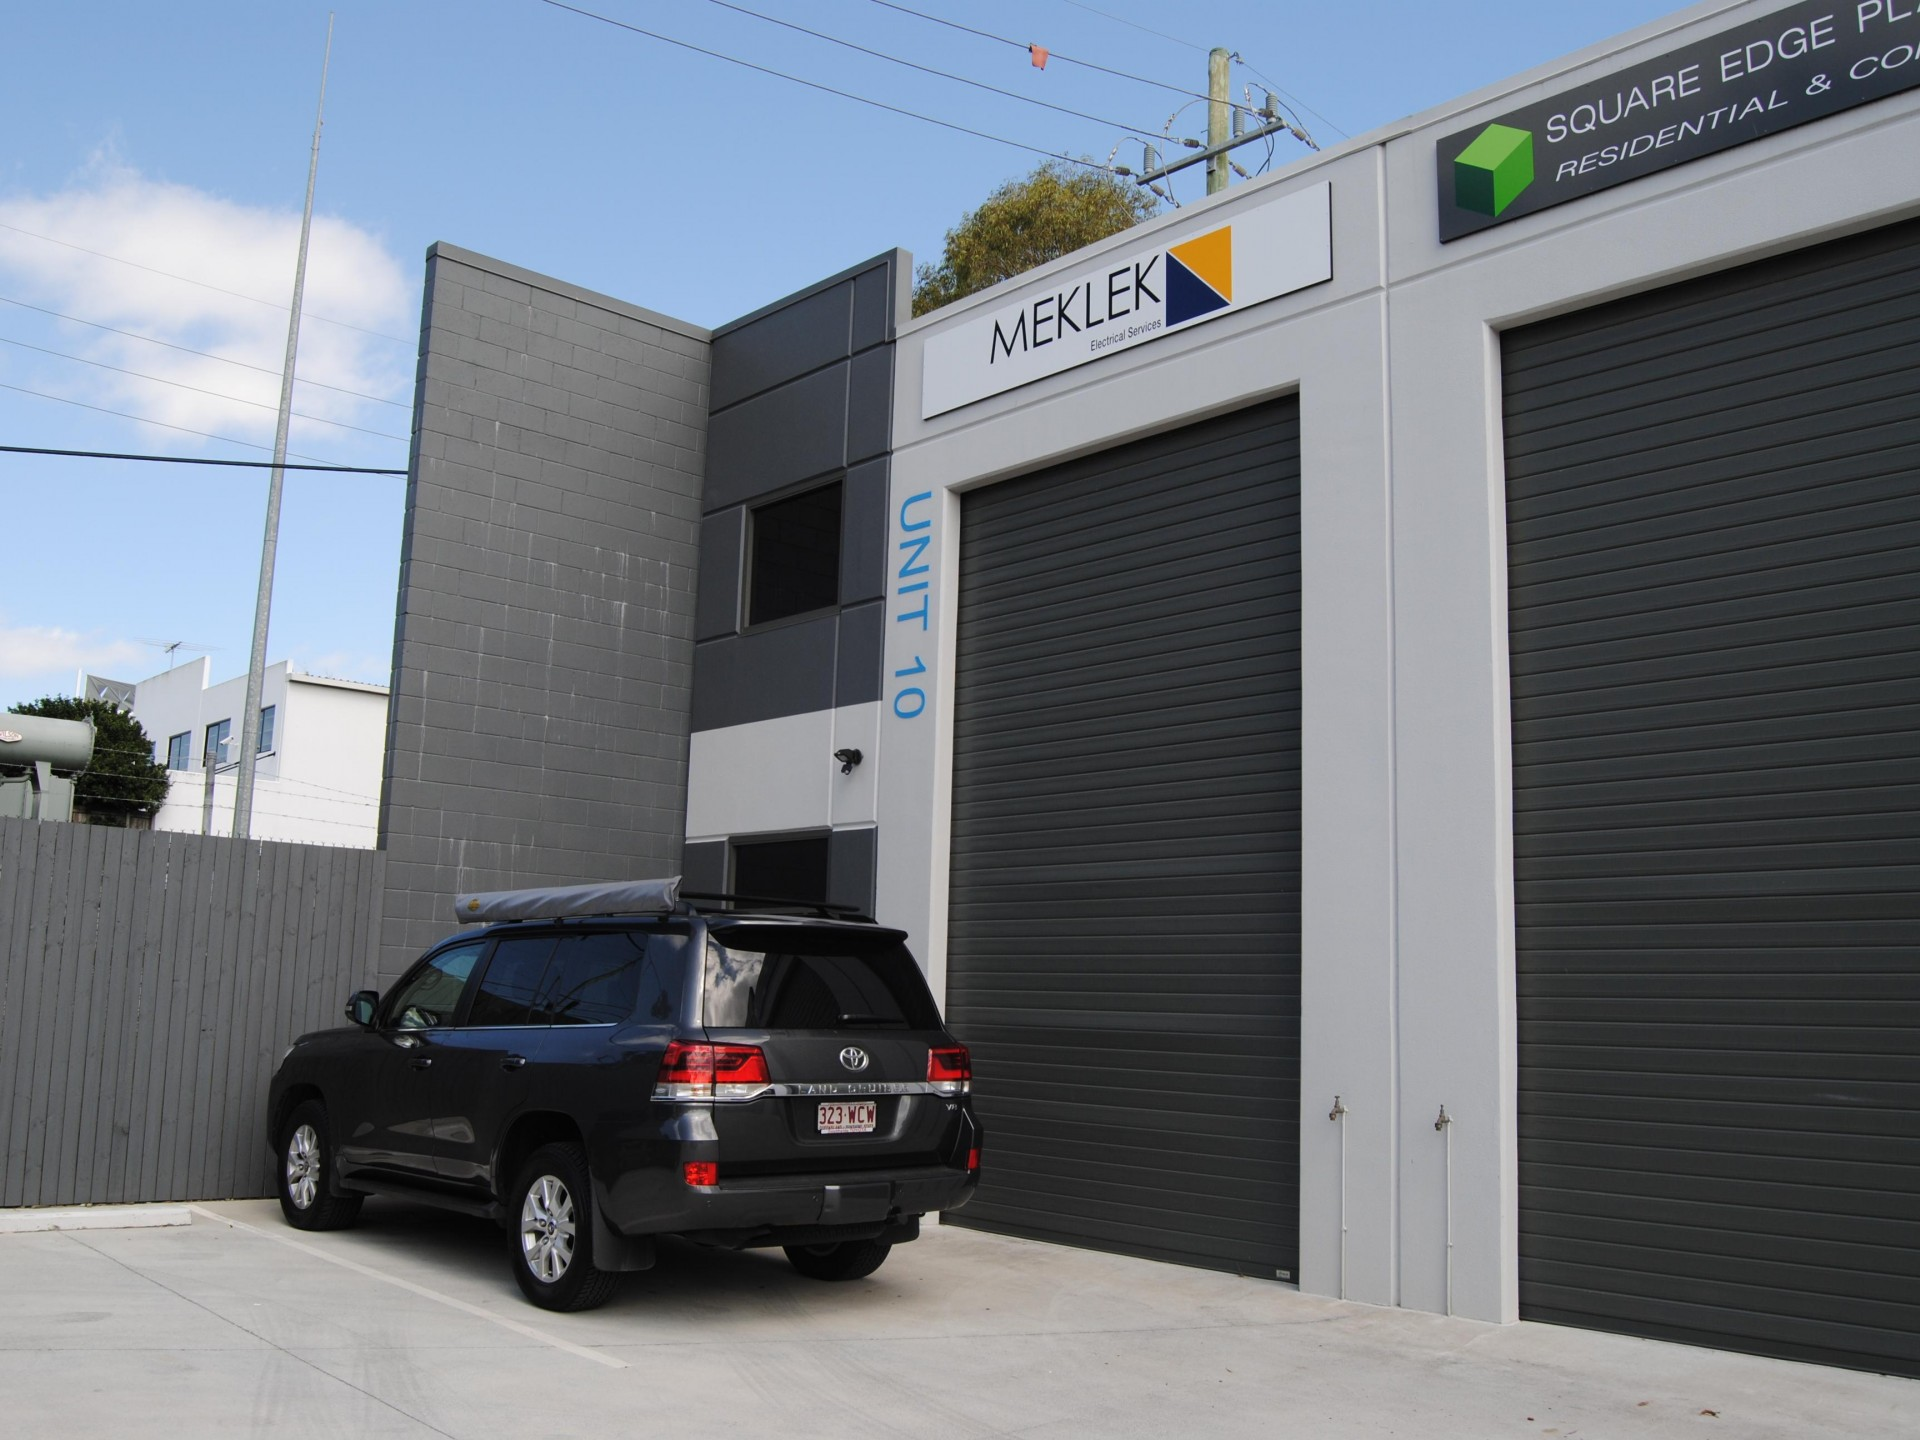 92m2 INDUSTRIAL OFFICE WAREHOUSE READY WITH 1 MONTHS NOTICE